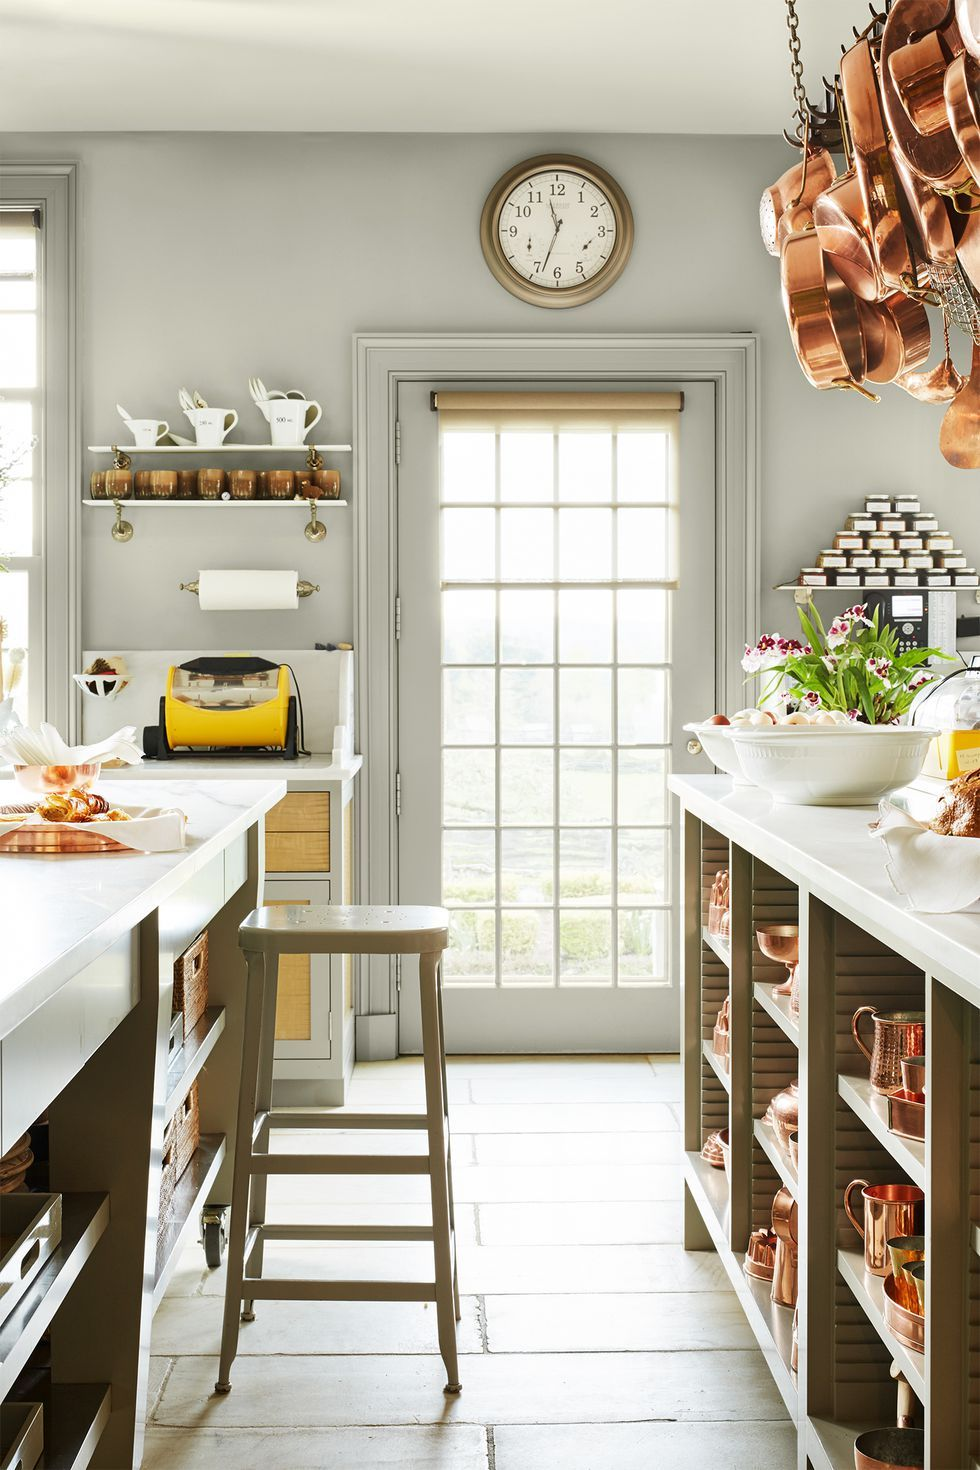 14 Kitchen Trends for 14 - New Cabinet and Color Design Ideas